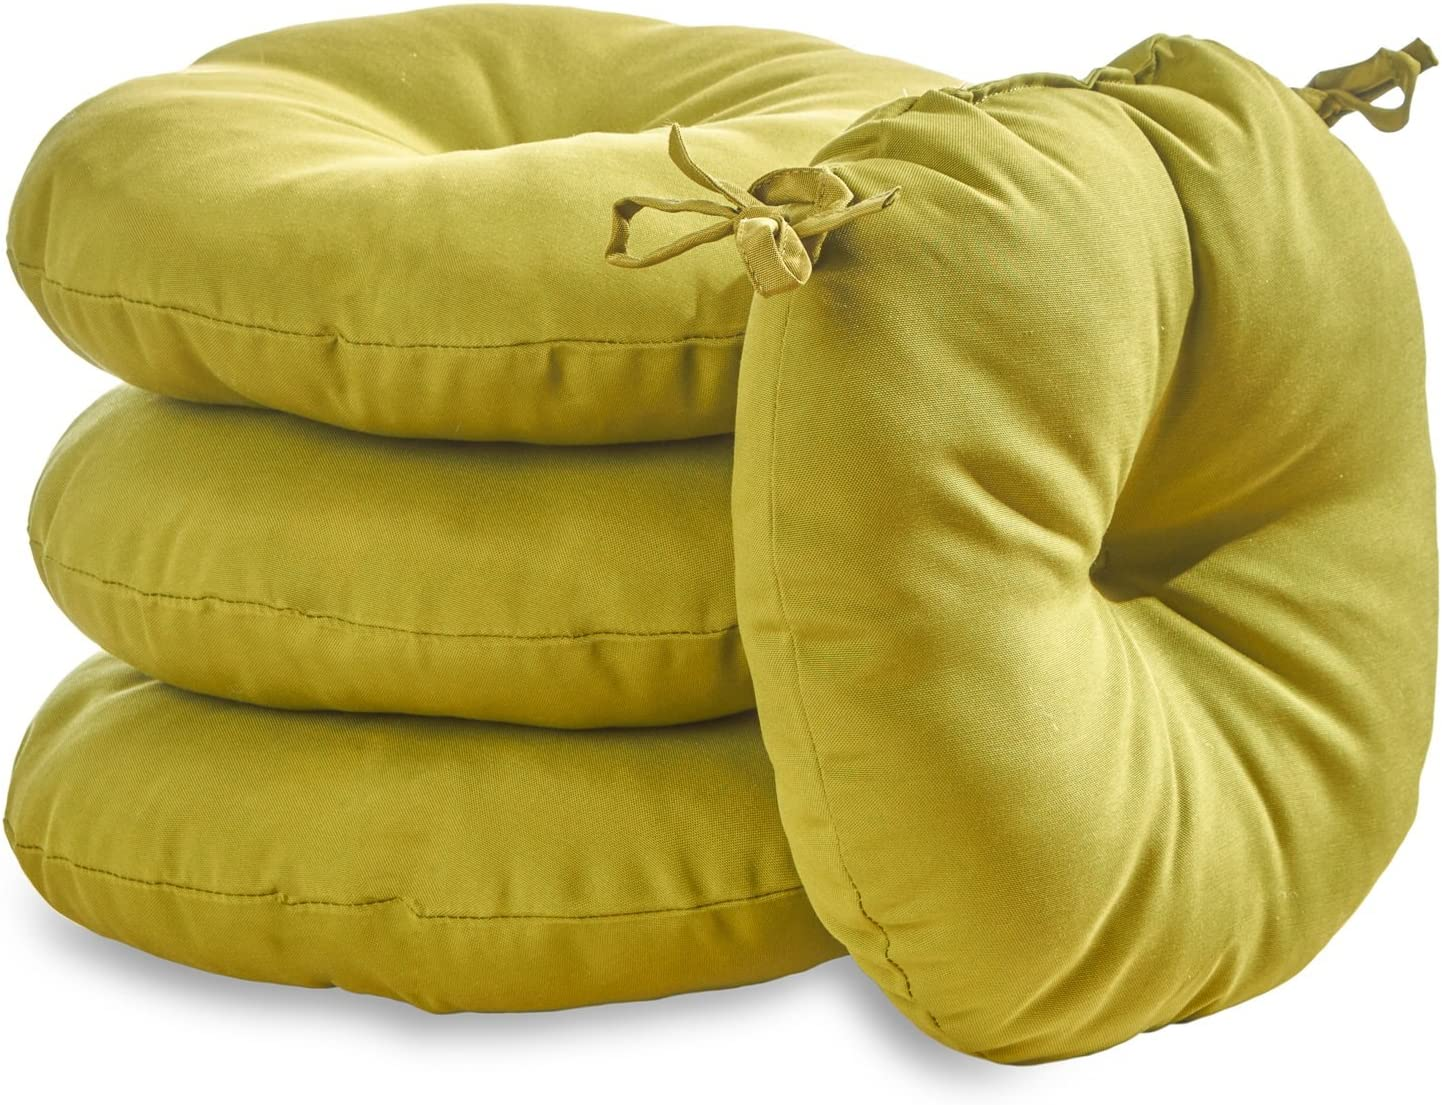 Kiwi Greendale Home Fashions 15 in Round Outdoor Bistro Chair Cushion set of 4